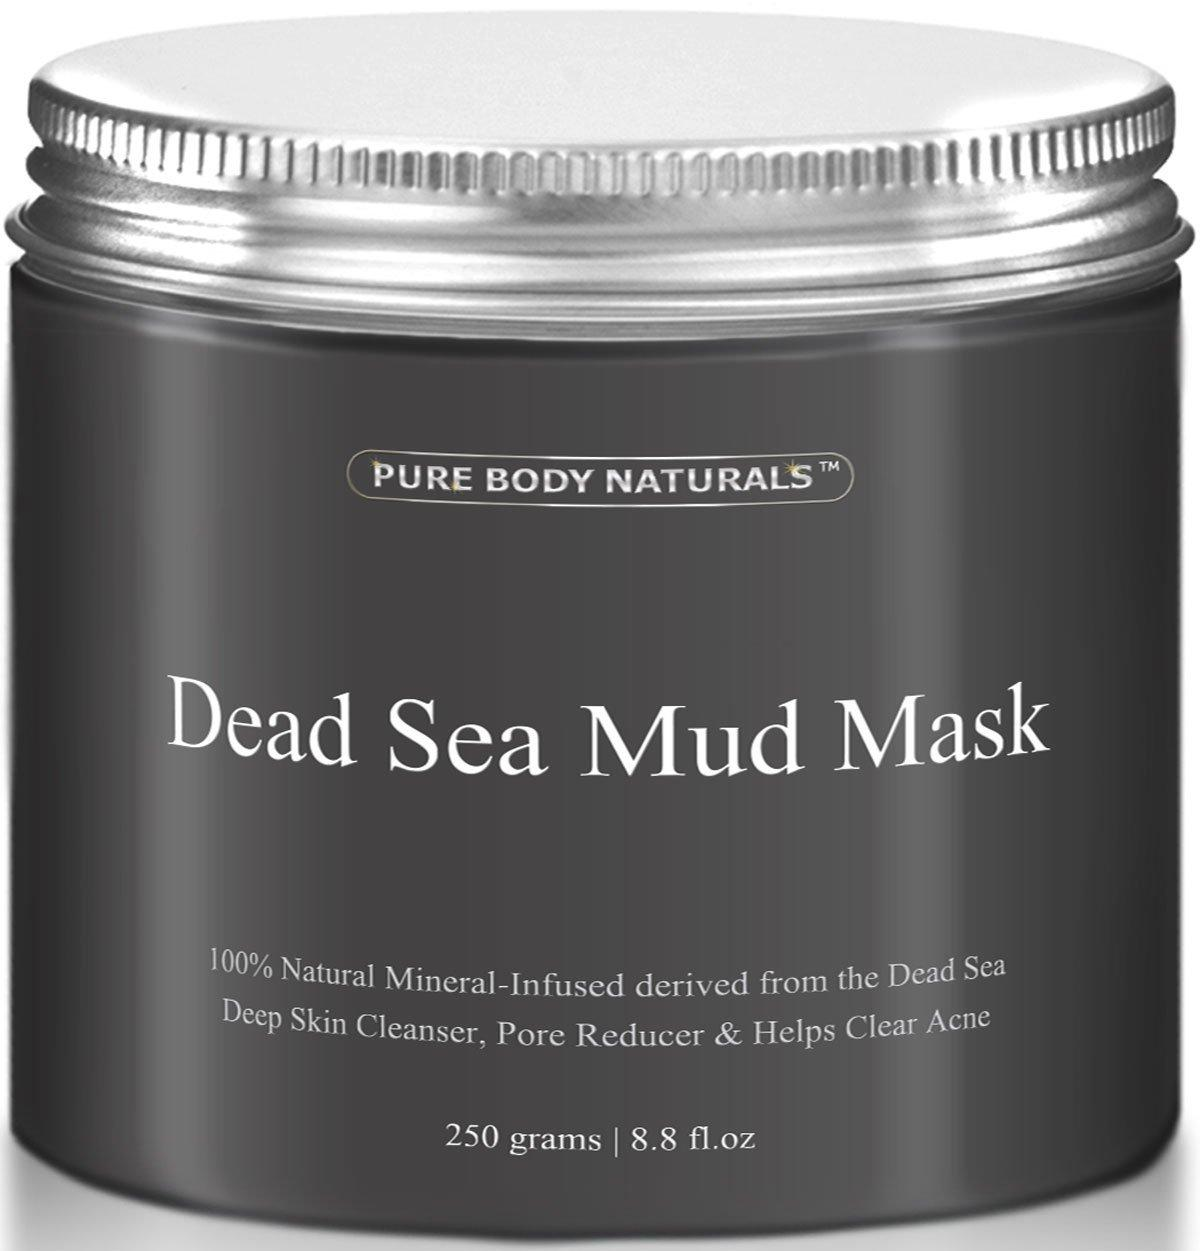 $14.95 Dead Sea Mud Mask from Pure Body Naturals